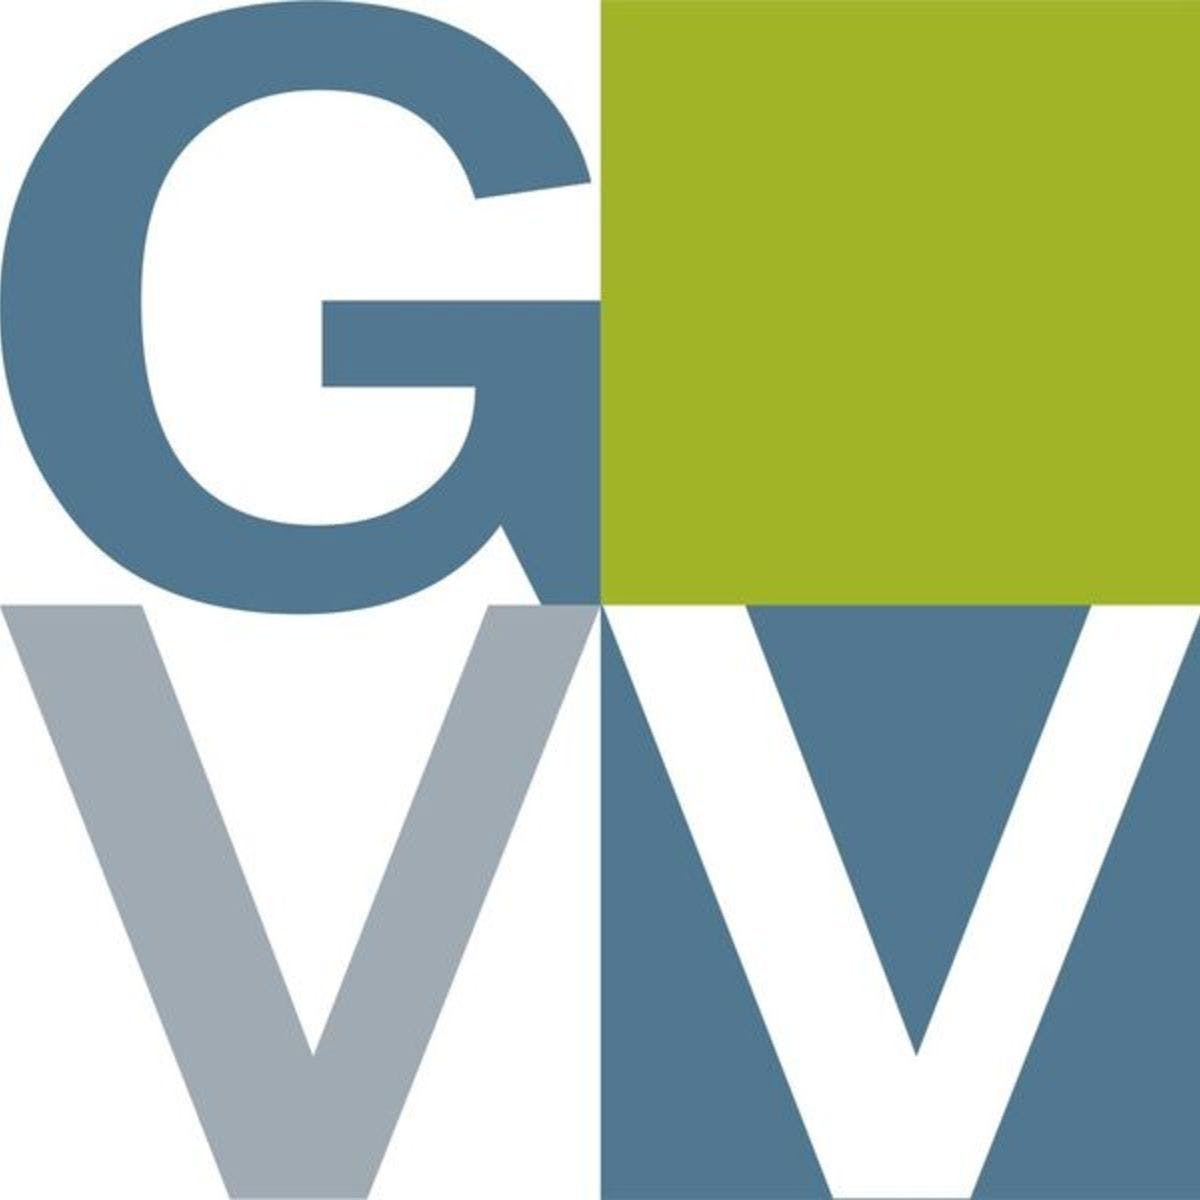 Ethical Leadership Through Giving Voice to Values